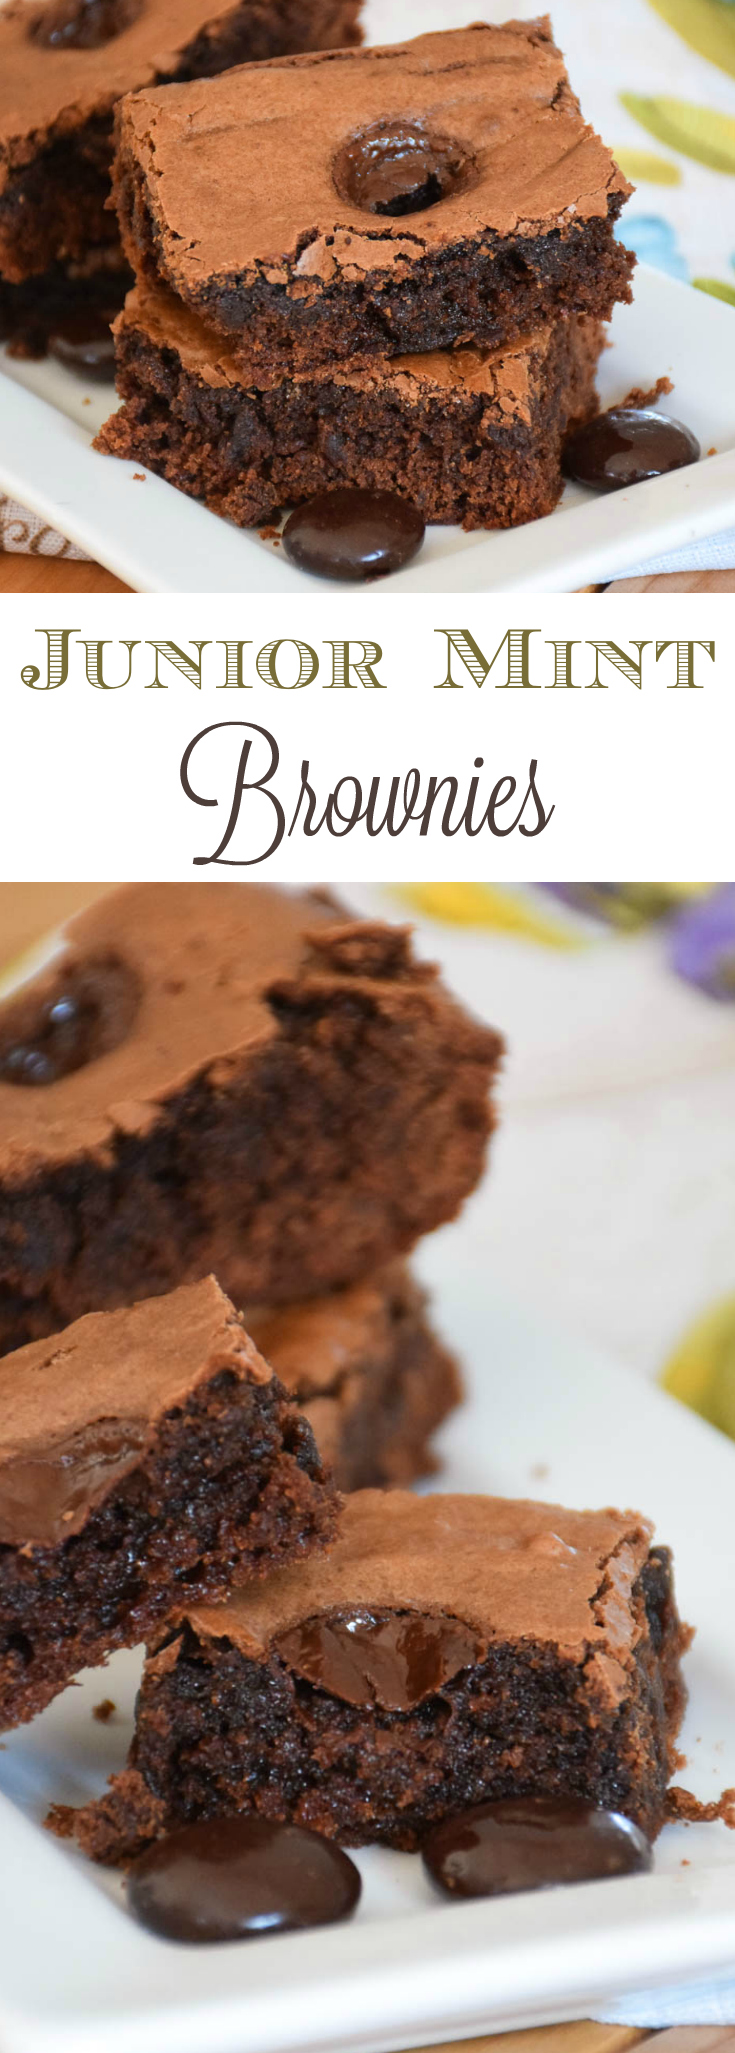 Junior Mint Brownies